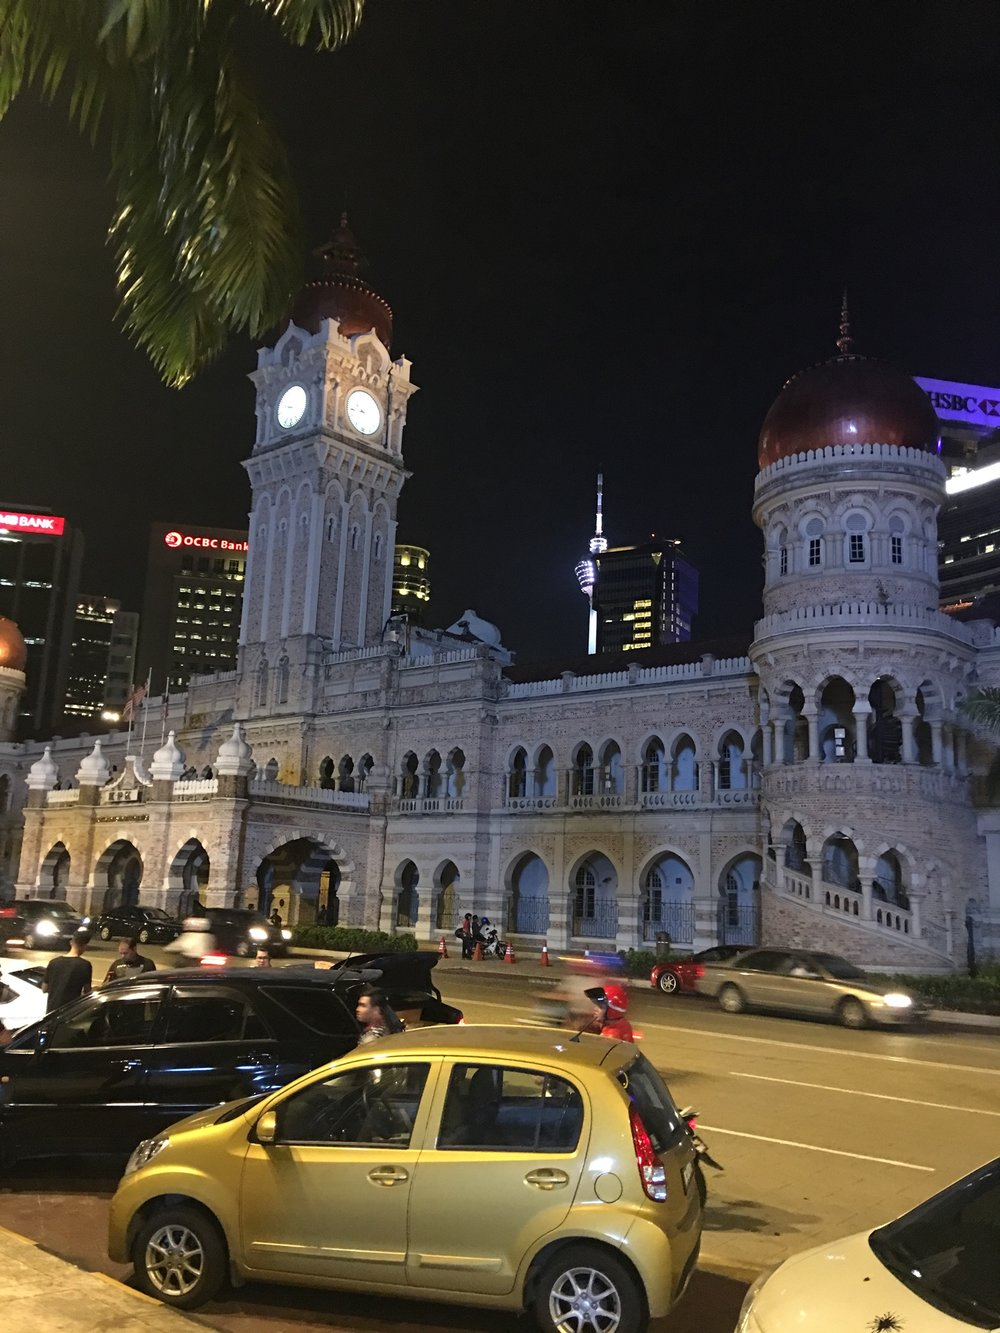 Sultan Abdul Samad Building, Independence Square, Kuala Lumpur